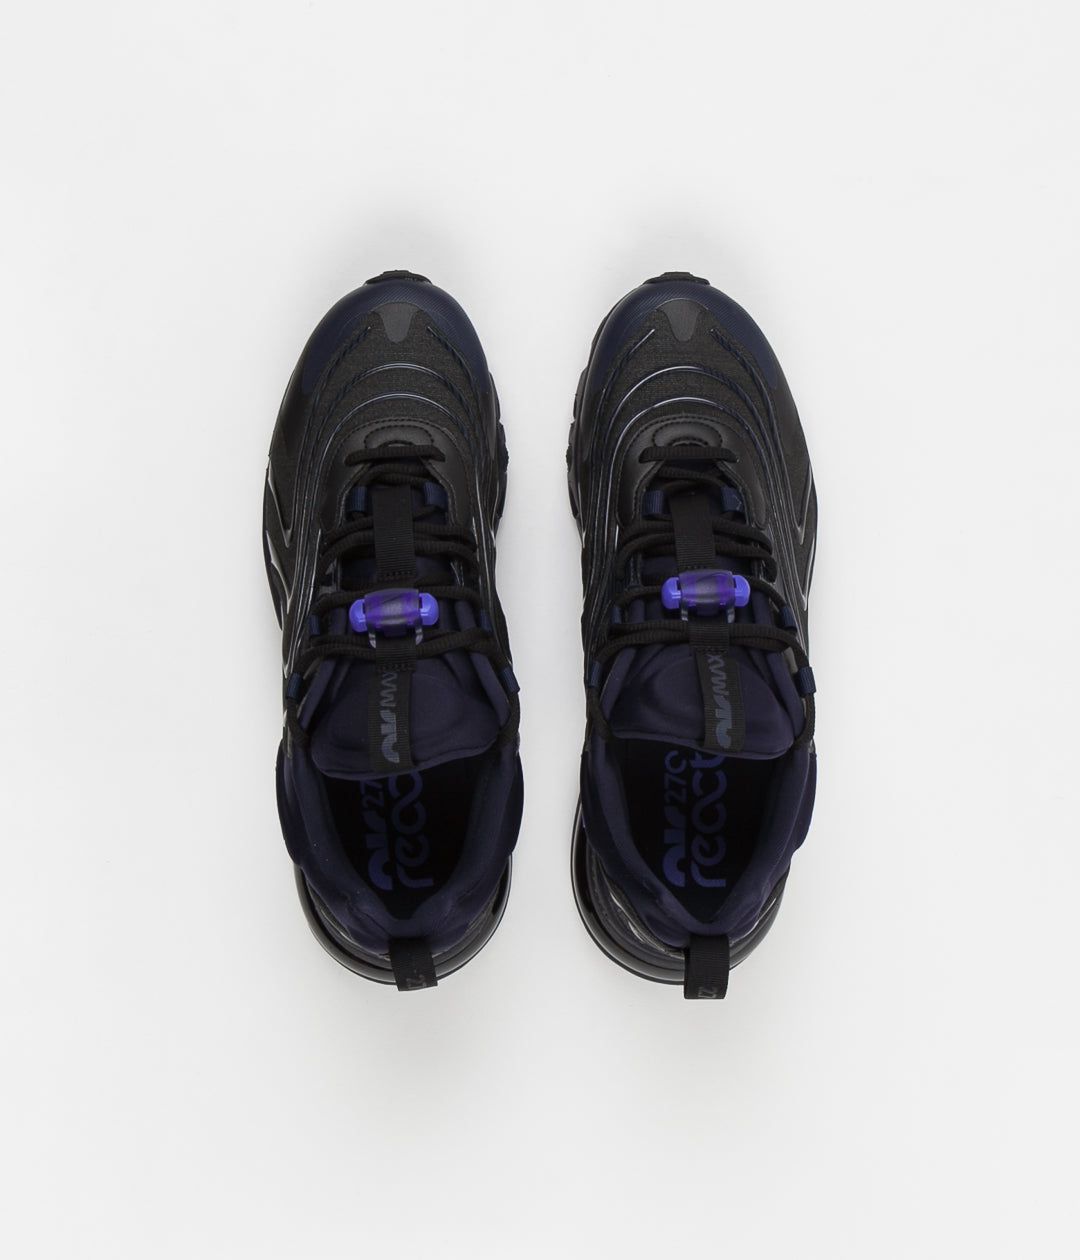 Nike Air Max 270 React Eng Shoes Black Sapphire Obsidian Always In Colour